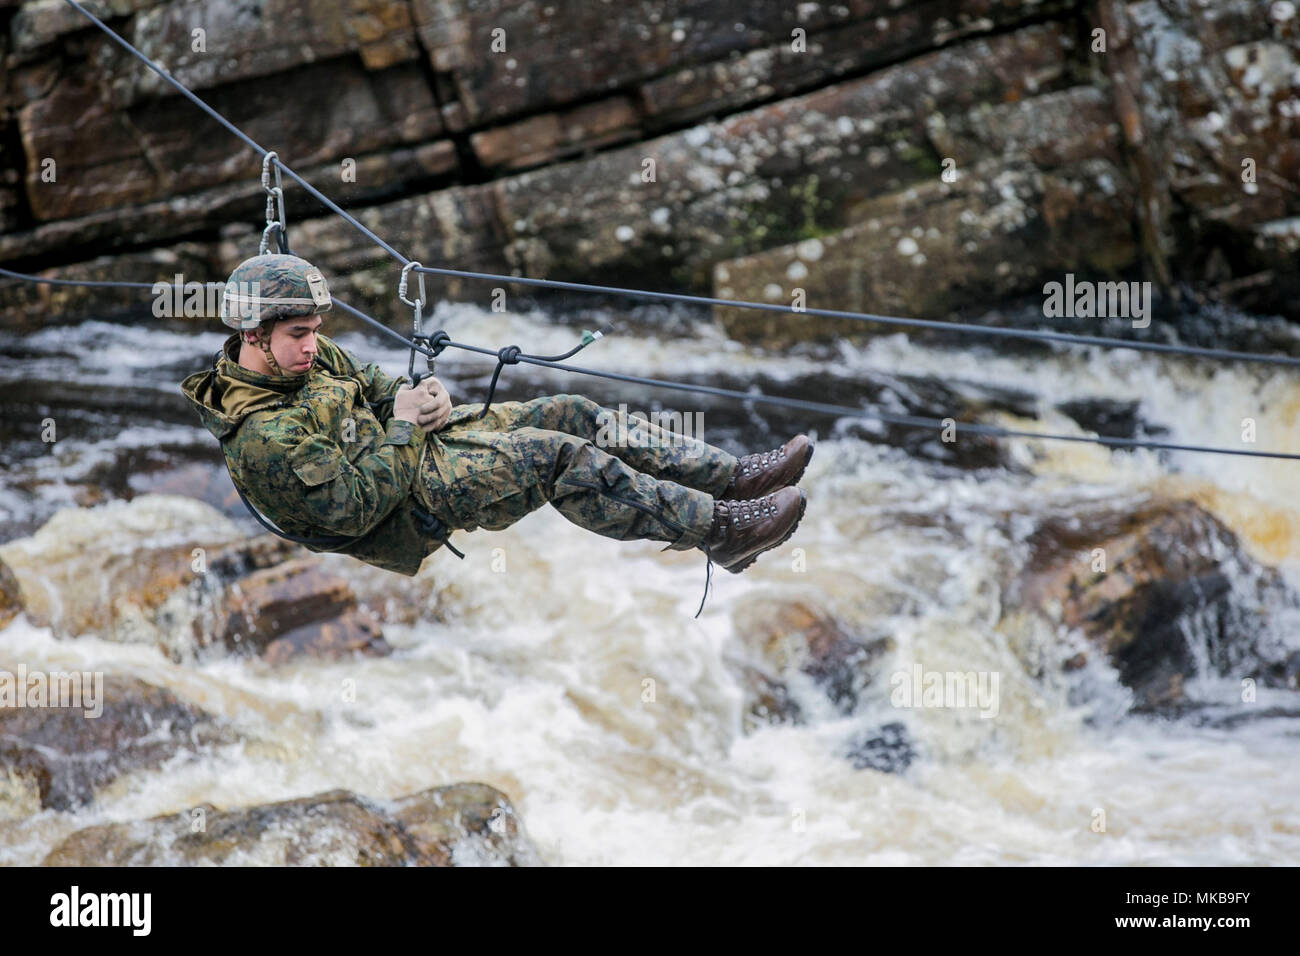 U.S. Marine with Marine Rotational Force Europe (MRF-E) crosses a river using a zip-line during exercise Green Claymore in Strathgarve, Scotland, Nov. 26, 2017. Green Claymore is a pre-Arctic training course lead by the British Royal Marines, designed to improve mountaineering and cold-weather survival skills. (U.S. Marine Corps photo by Cpl. Careaf L. Henson/Released) - Stock Image